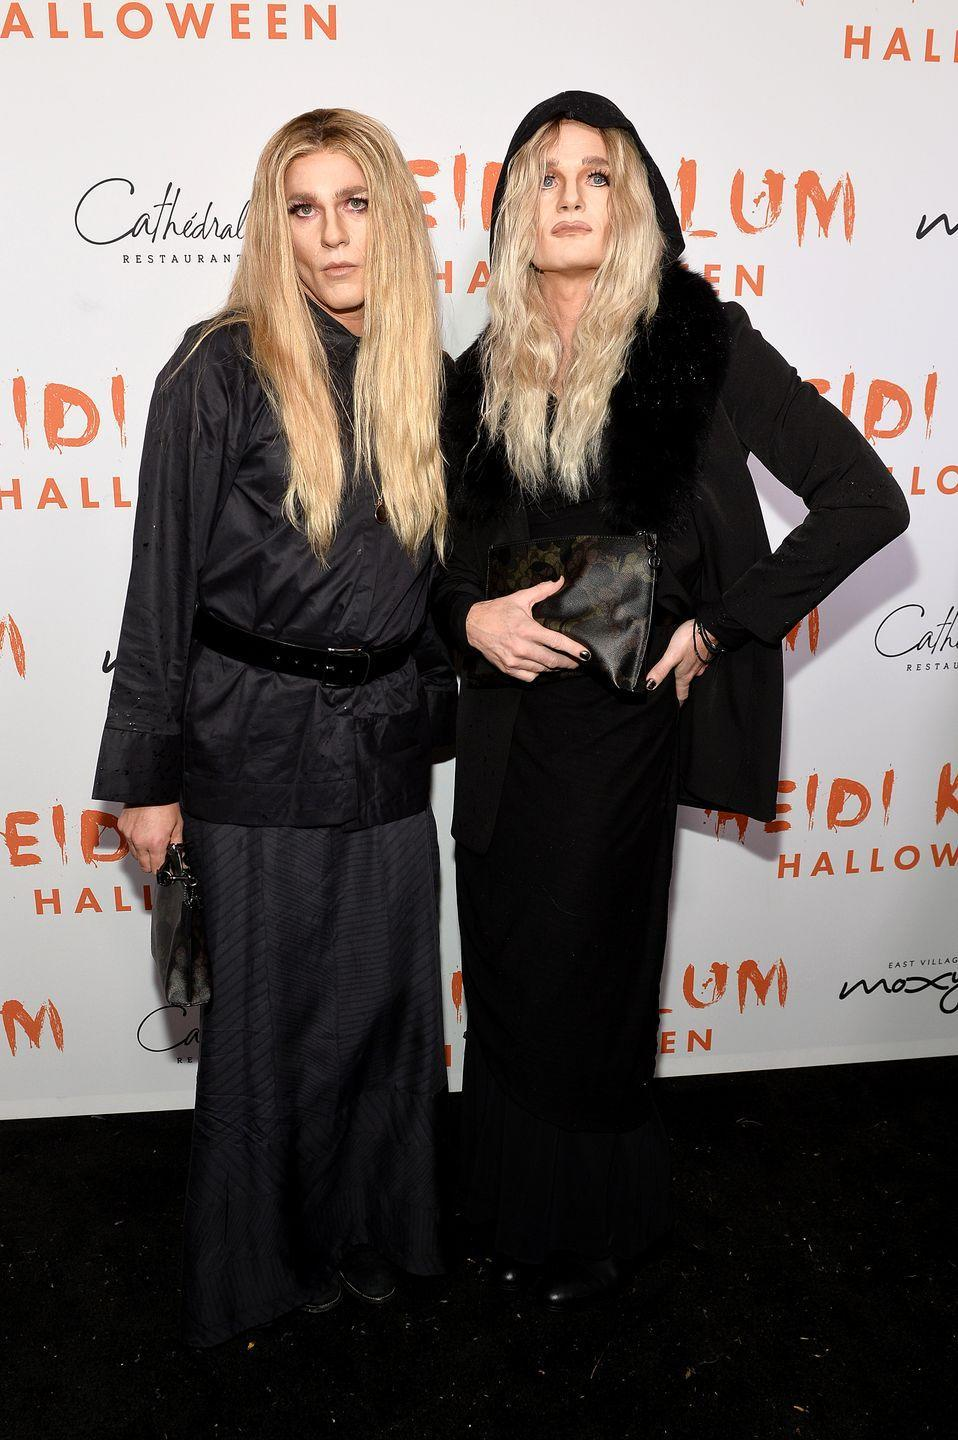 <p>Neil Patrick Harris and his husband David Burtka dressed up as twins Mary Kate and Ashley Olsen for Halloween in 2019. There is absolutely nothing about this costume that isn't perfection. The contour. The hair. The all-black outfits. It's *chef's kiss* hilarious. </p>